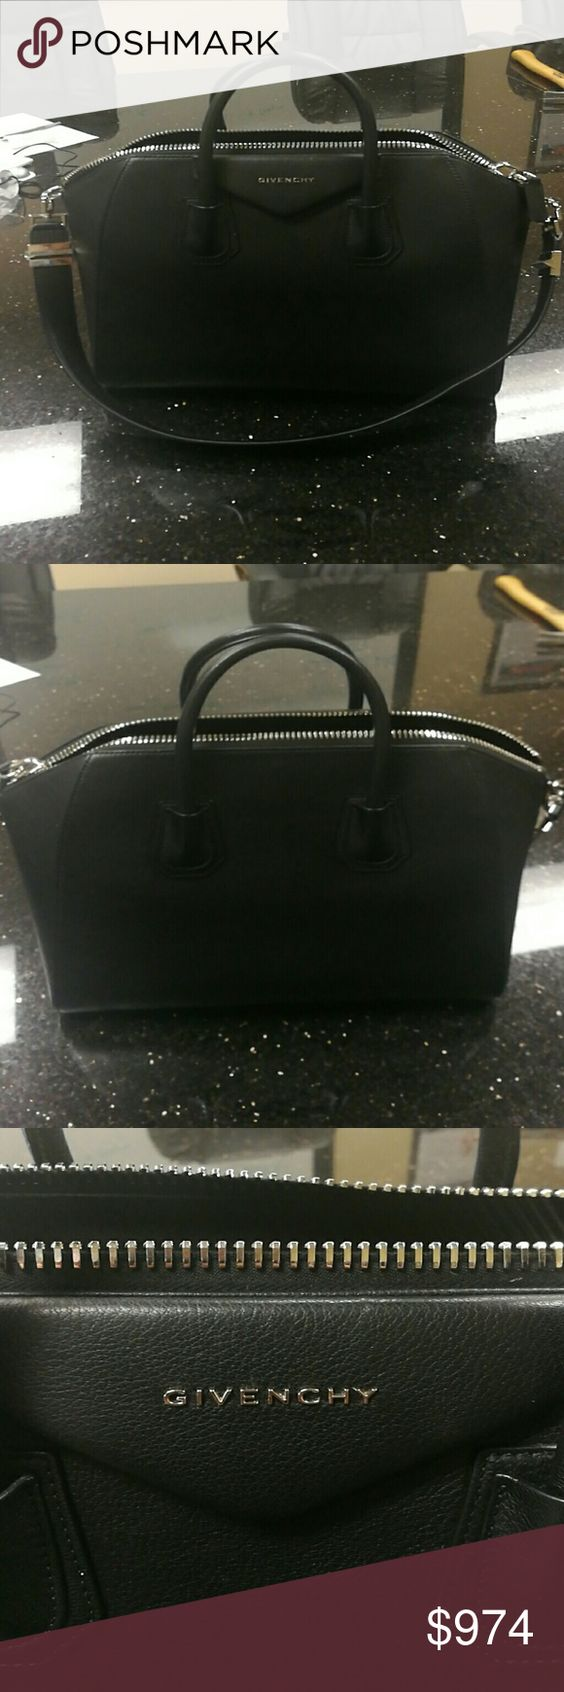 Givenchy Antigona black leather bag Like new. Some minor scuffs as seen in pictures. Bags